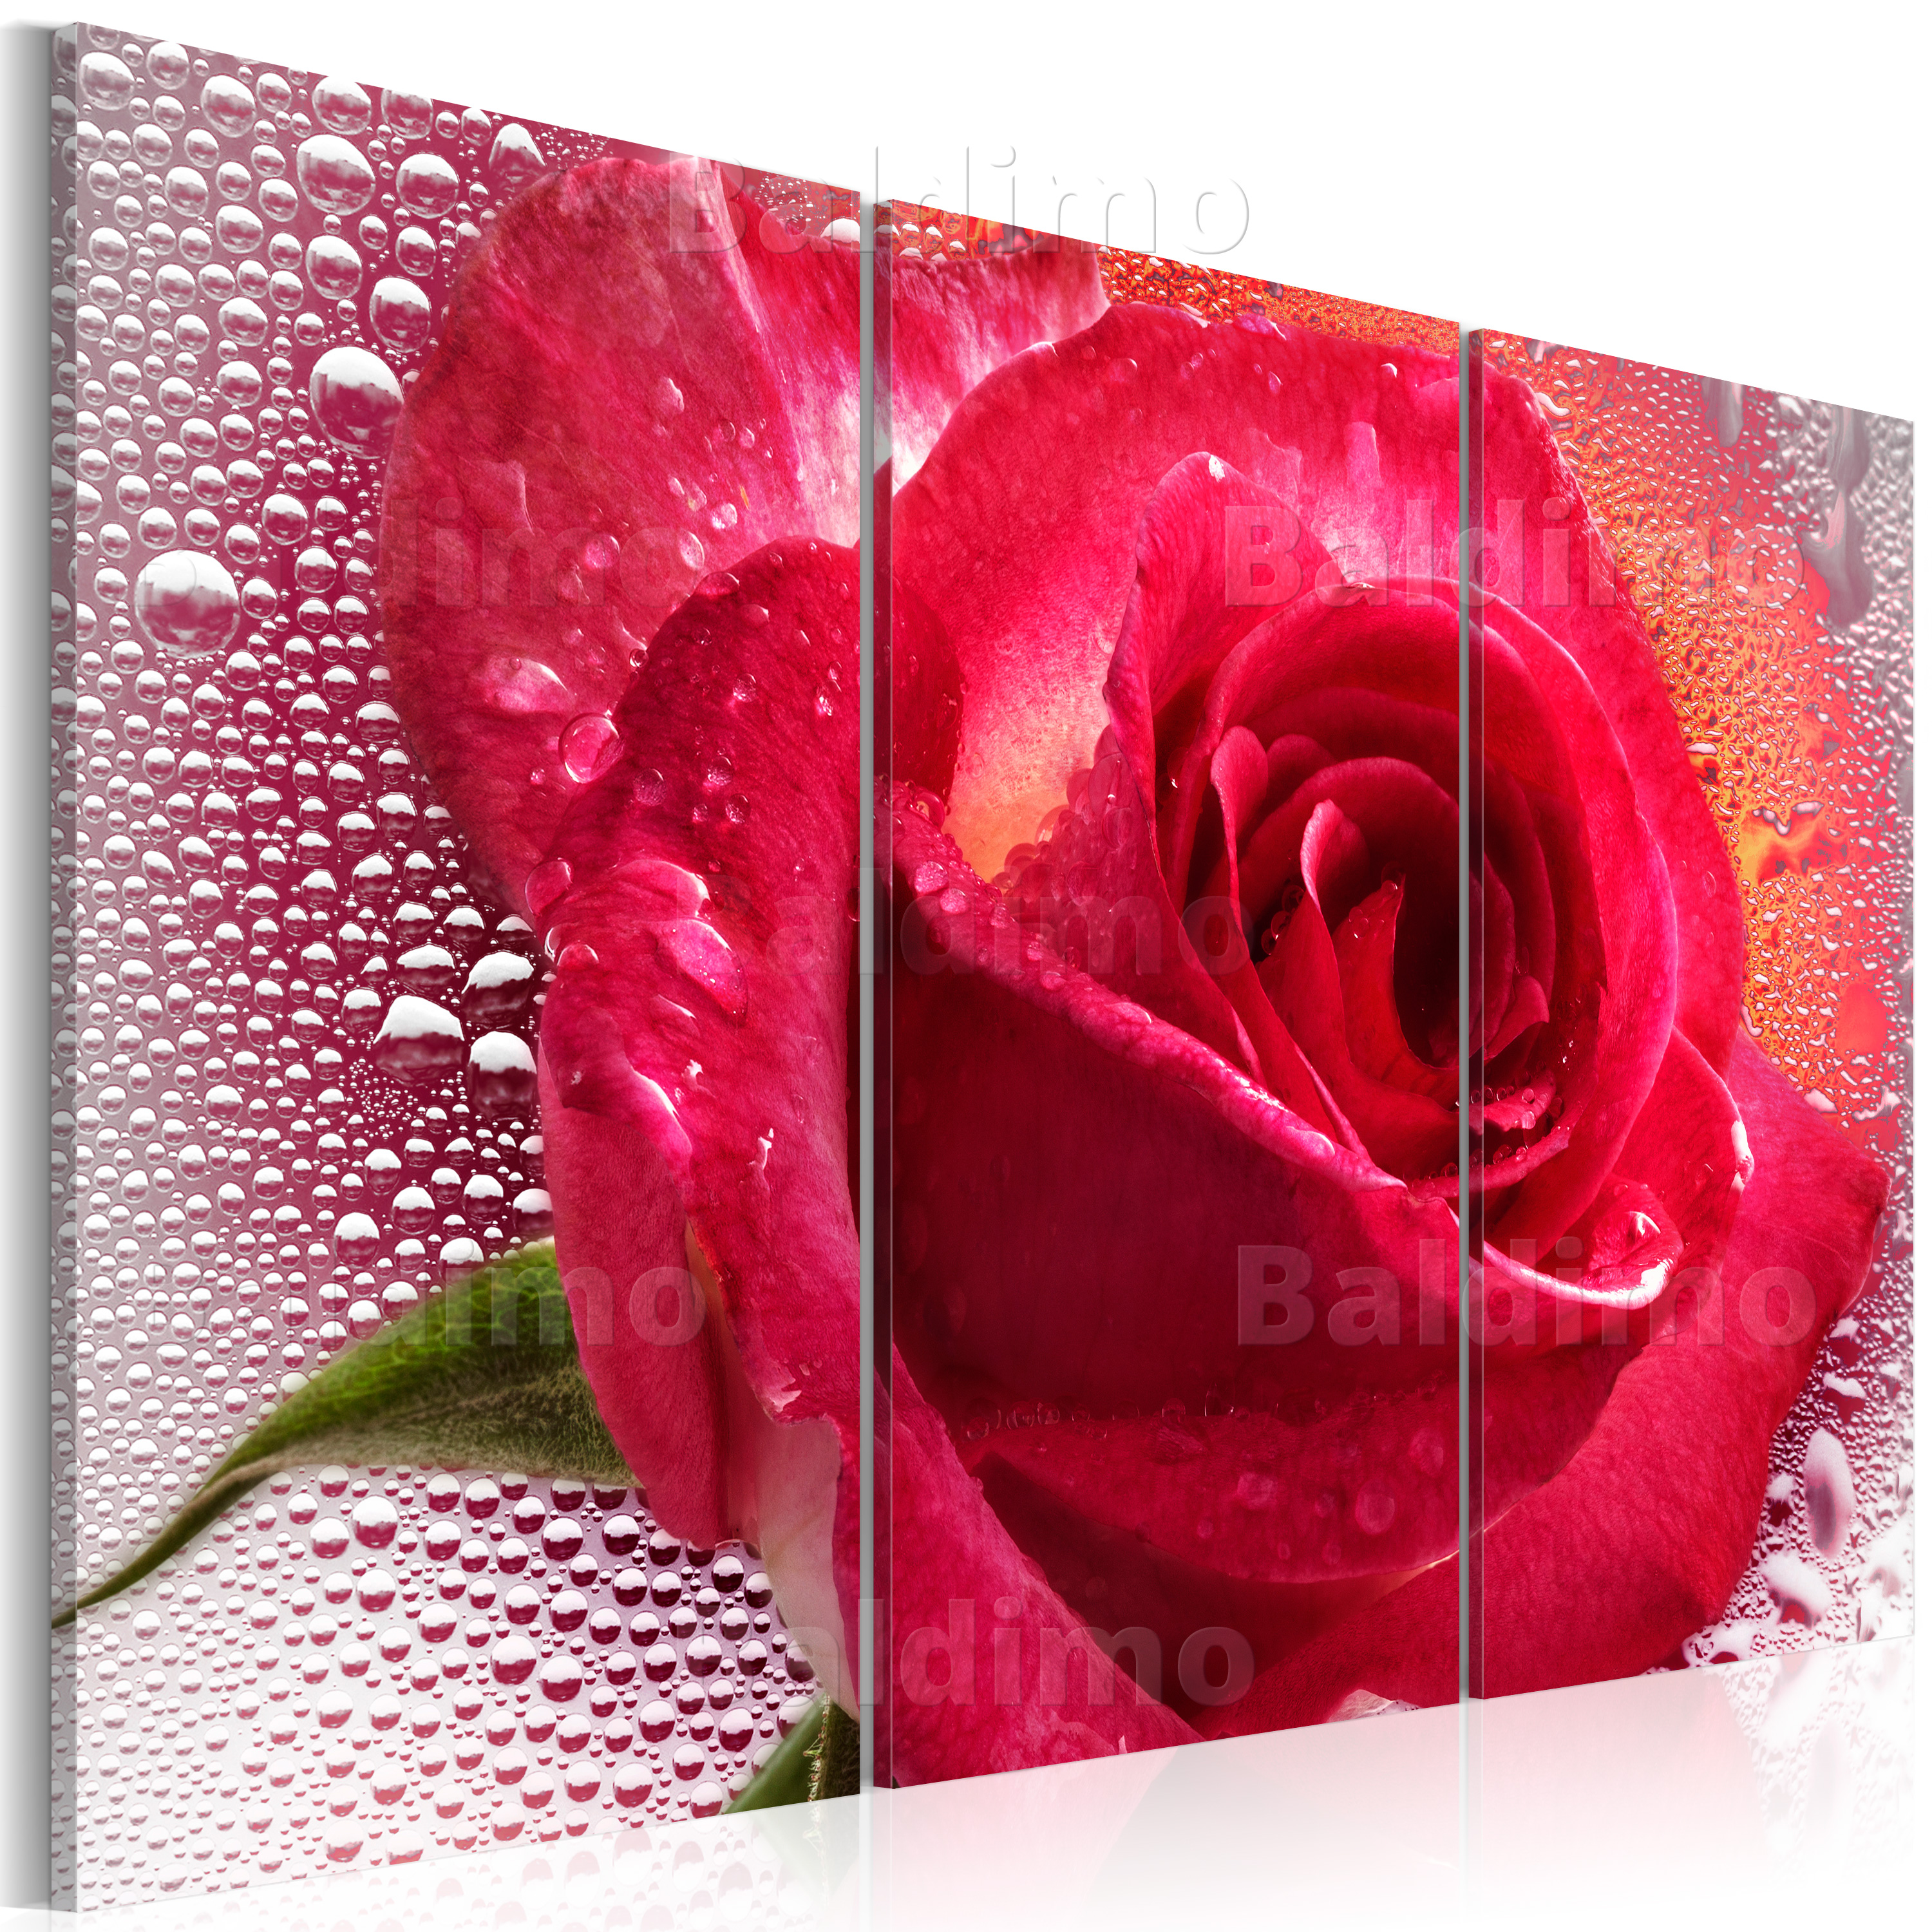 LARGE CANVAS WALL ART PRINT + IMAGE + PICTURE + PHOTO FLOWERS 020110-36